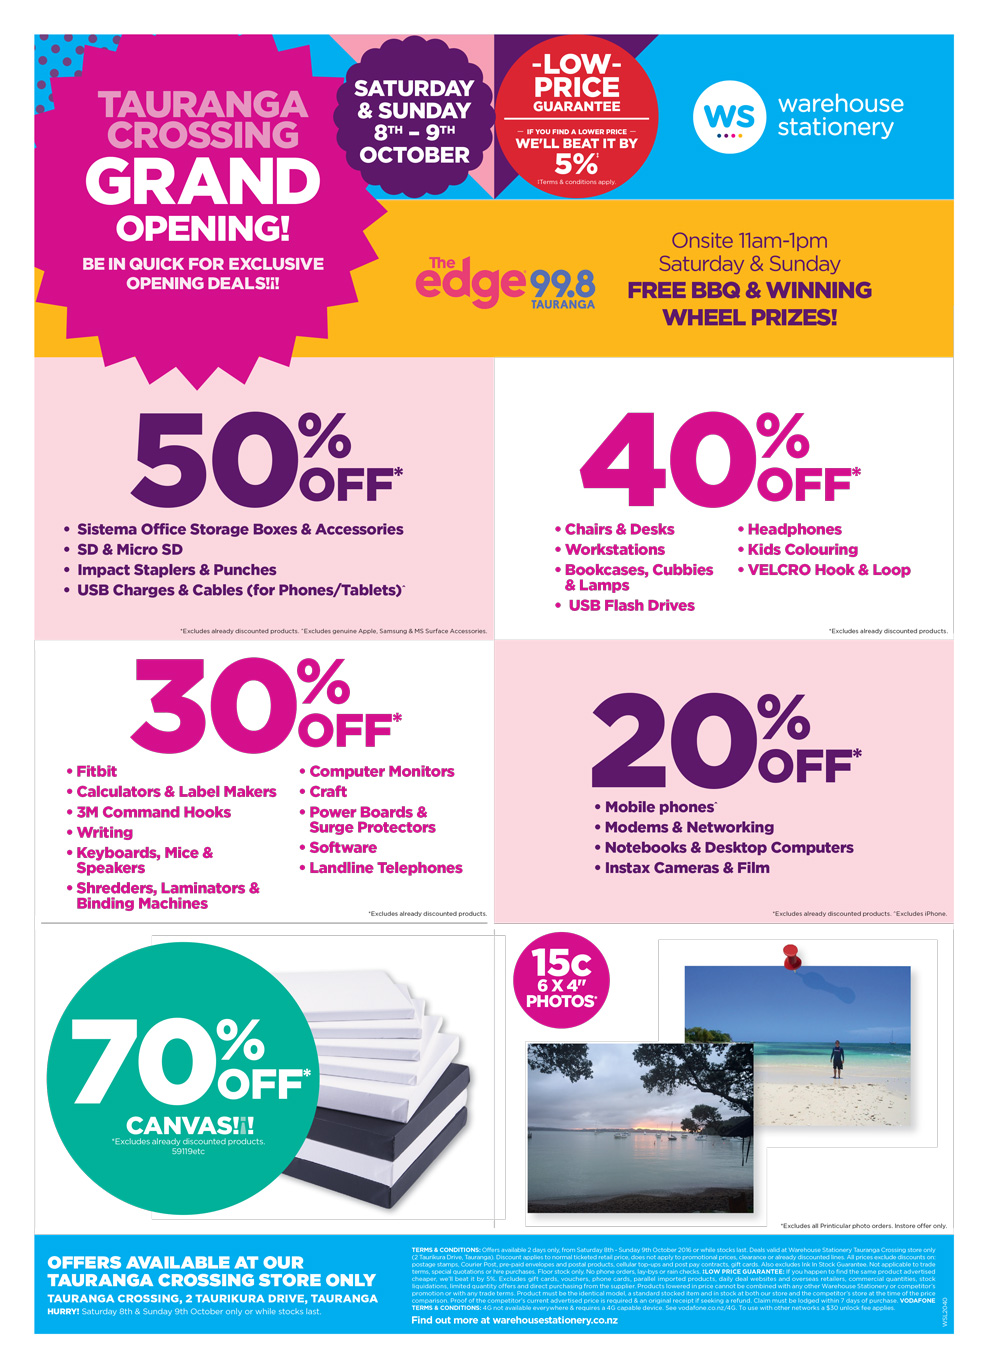 Tauranga Crossing Grand Opening exclusive offers Mailer - Page 2